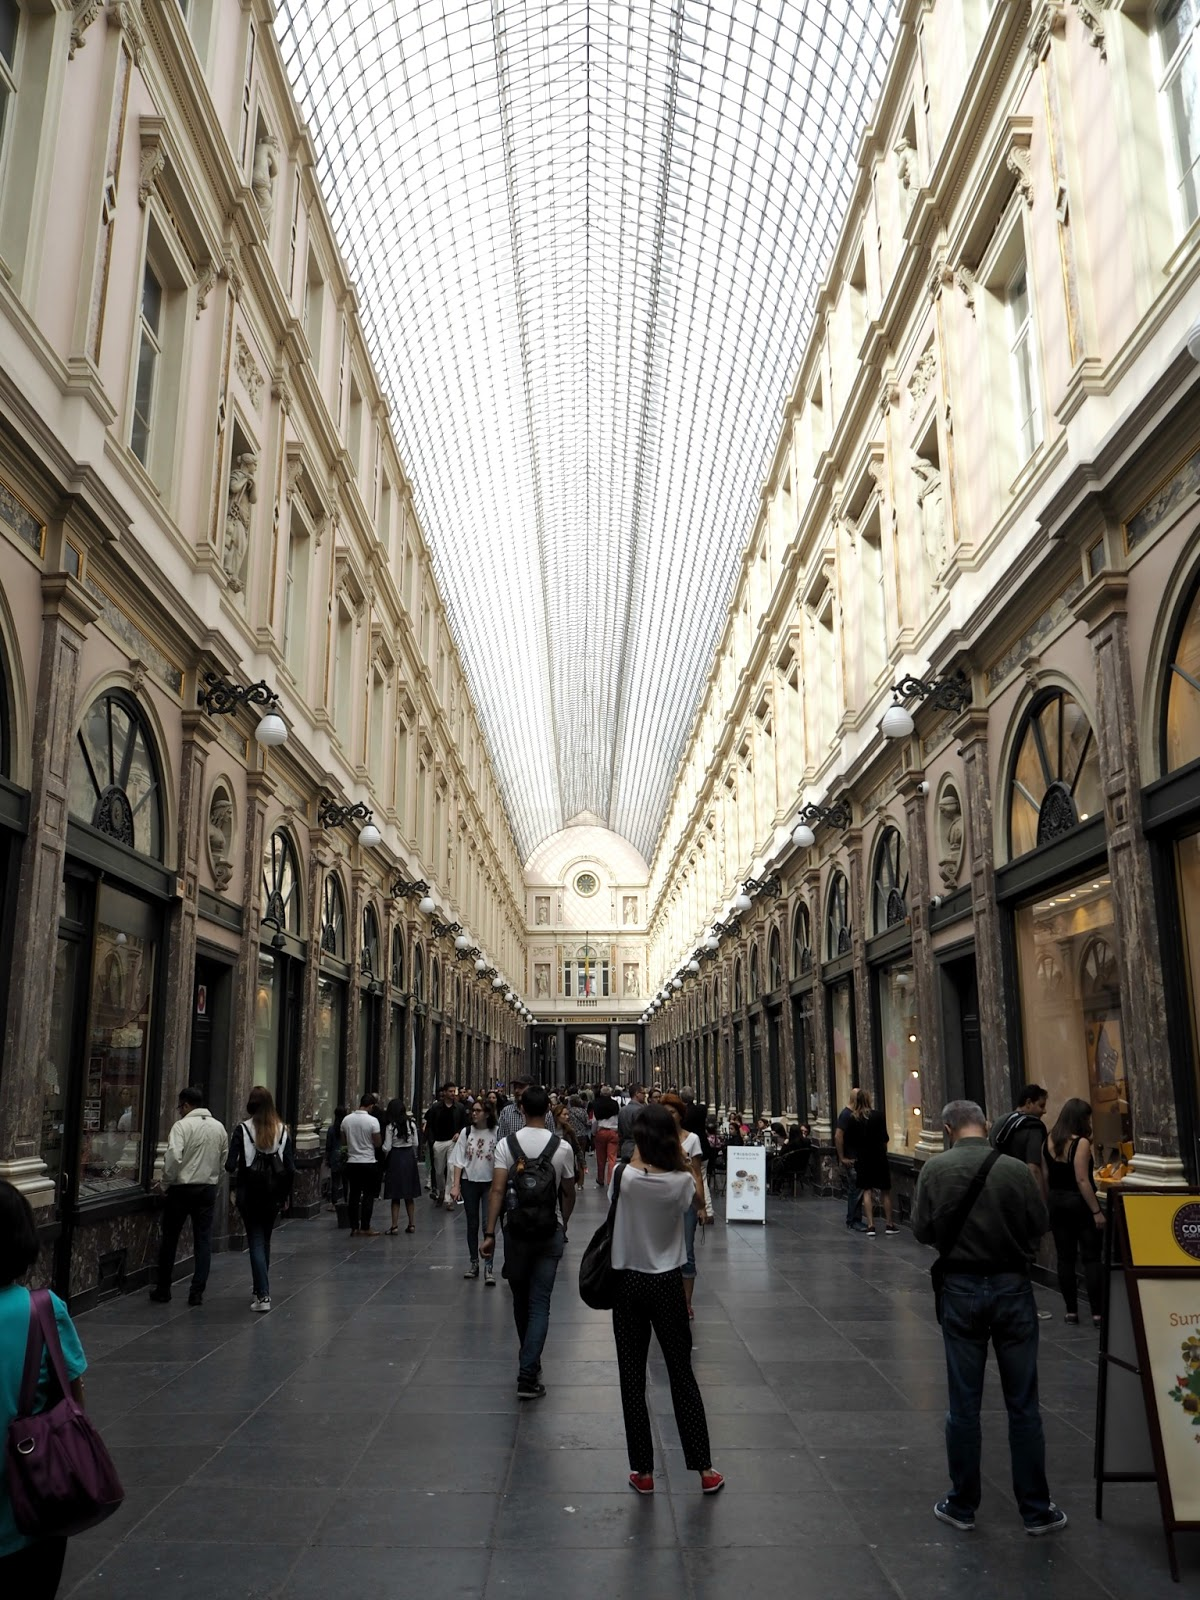 Brussels day trip galeries royales saint hubert